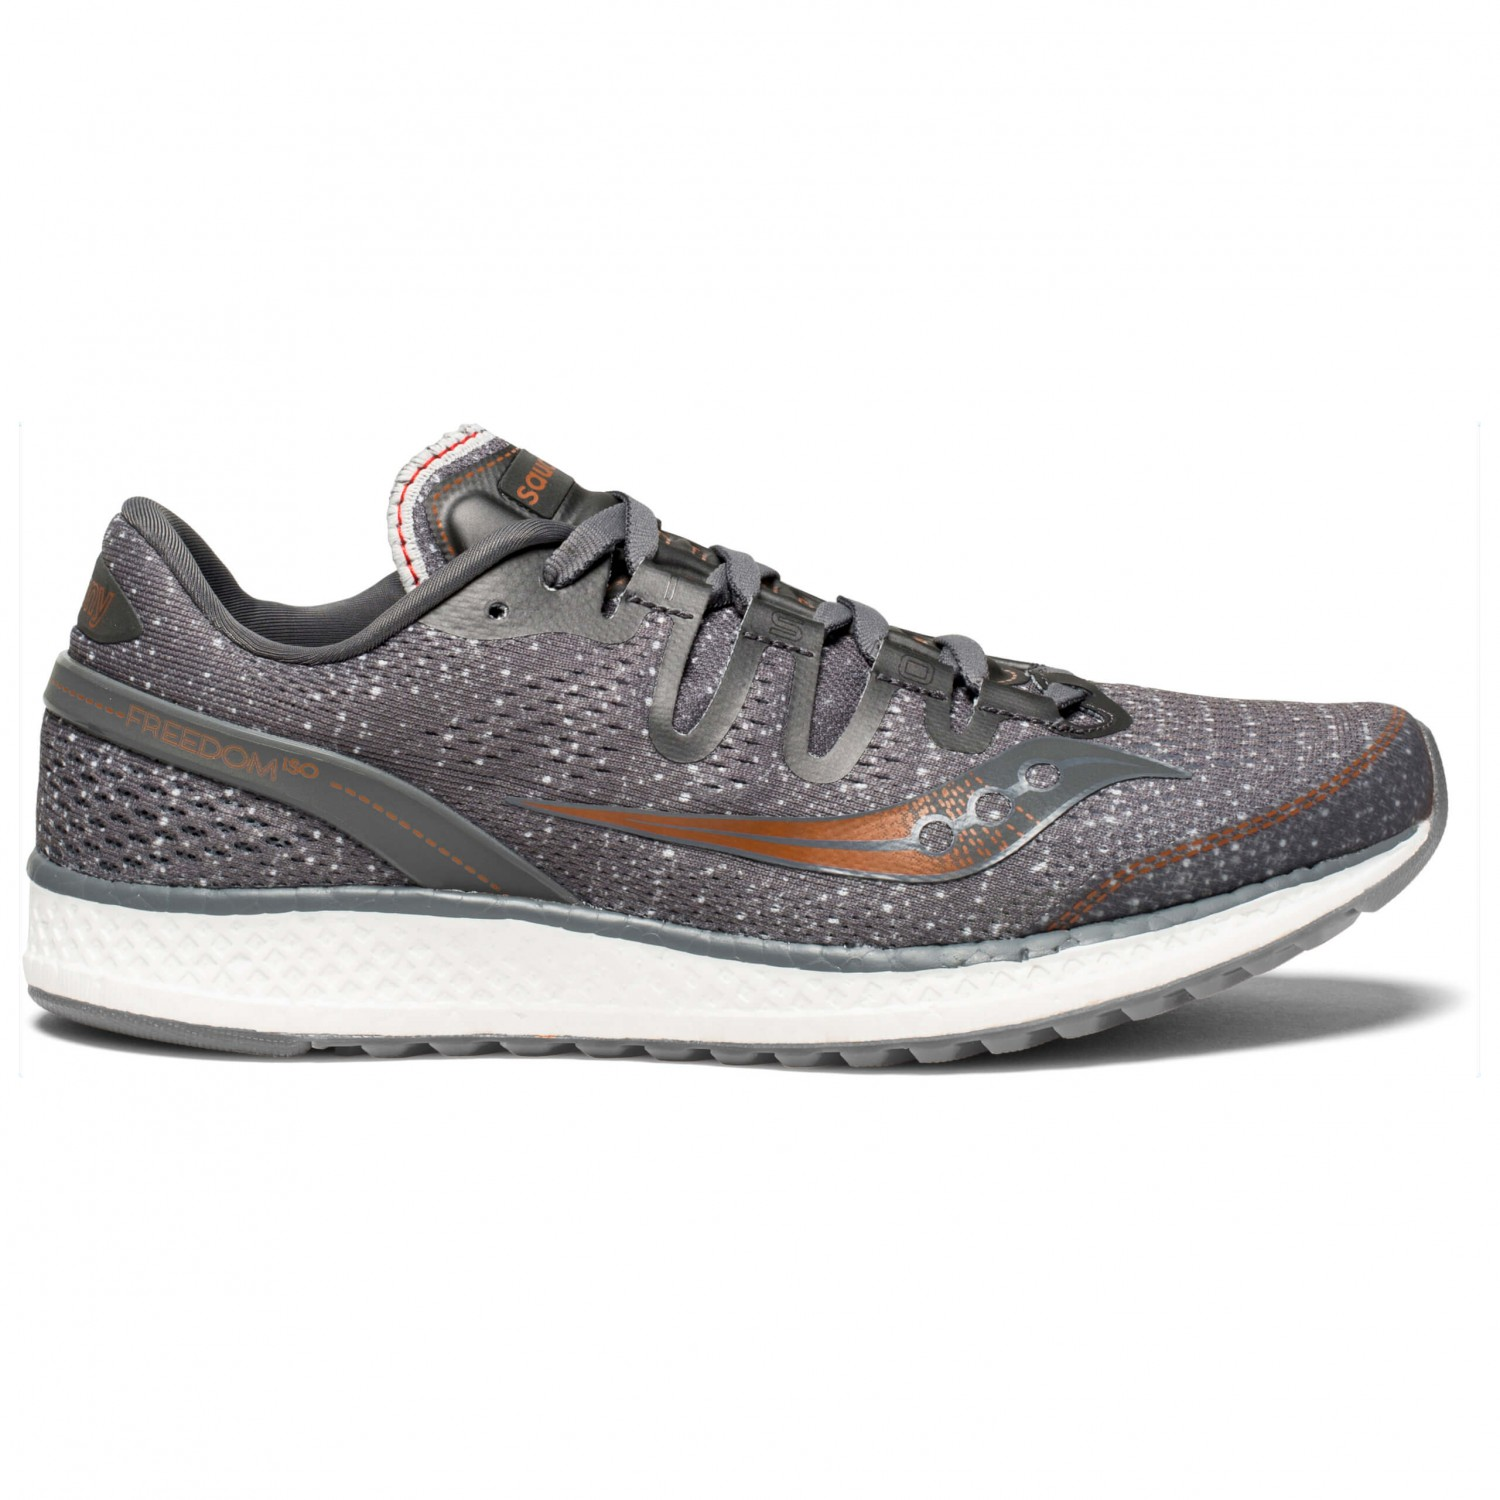 67264bed3a065 Saucony - Women s Freedom Iso - Zapatillas para correr ...